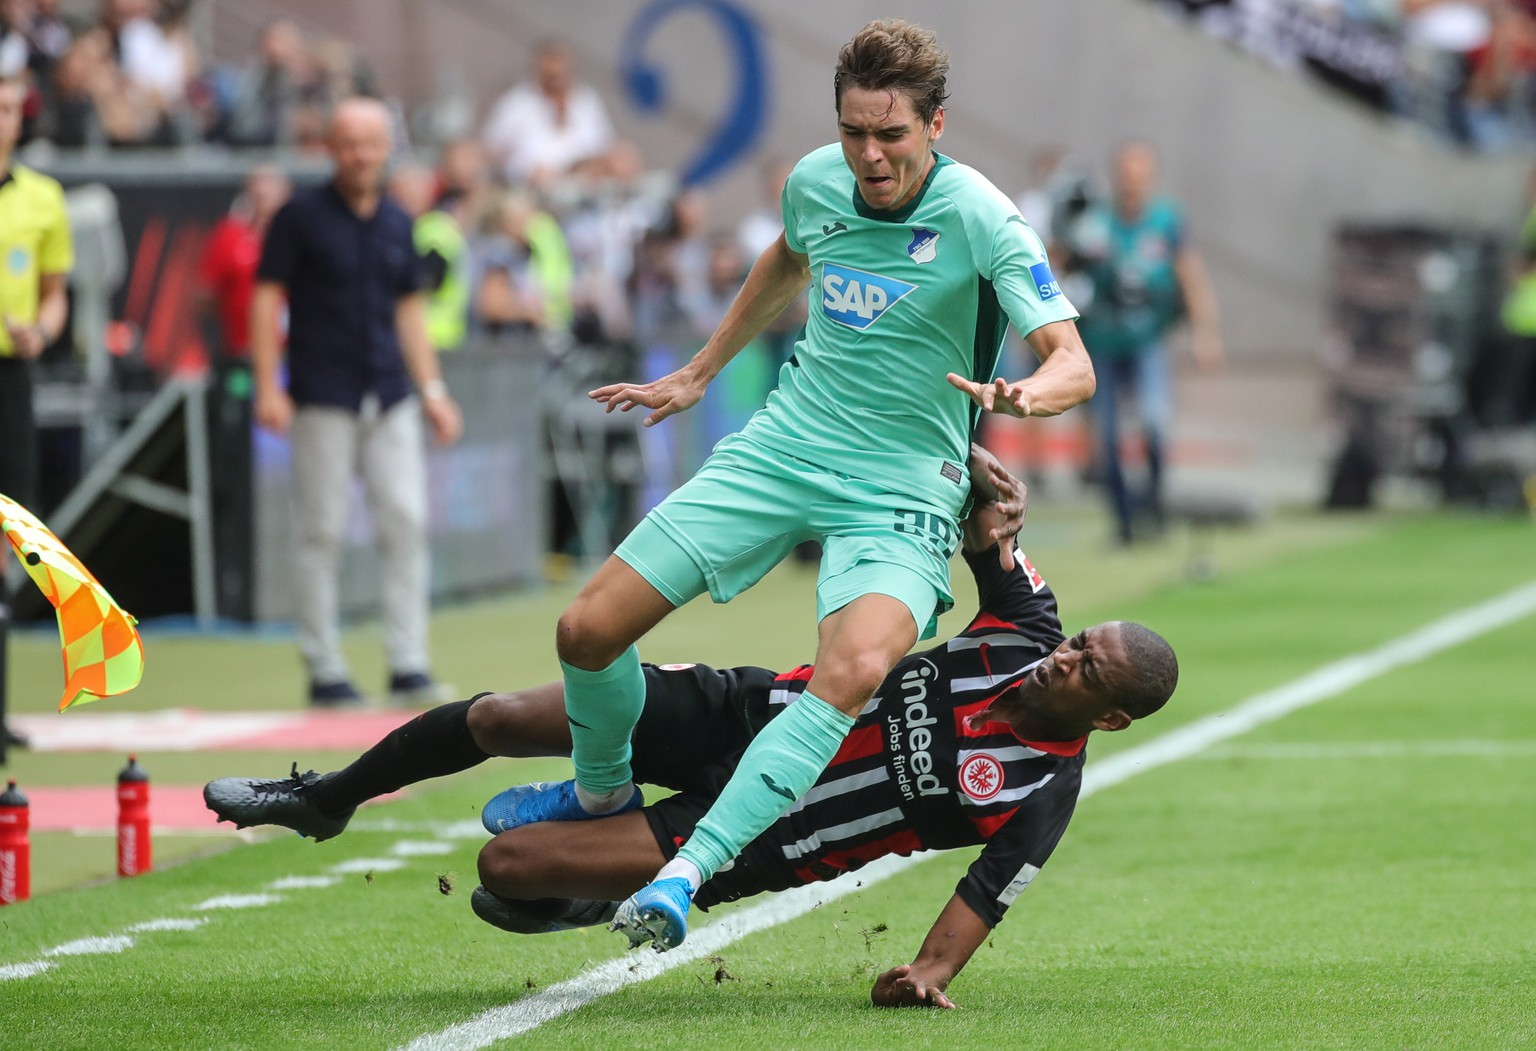 epa07779398 Frankfurt's Gelson Fernandes (down) in action against Hoffenheim's Robert Skov  during the German Bundesliga soccer match between Eintracht Frankfurt and TSG Hoffenheim in Frankfurt Main, Germany, 18 August 2019.  EPA/ARMANDO BABANI CONDITIONS - ATTENTION: The DFL regulations prohibit any use of photographs as image sequences and/or quasi-video